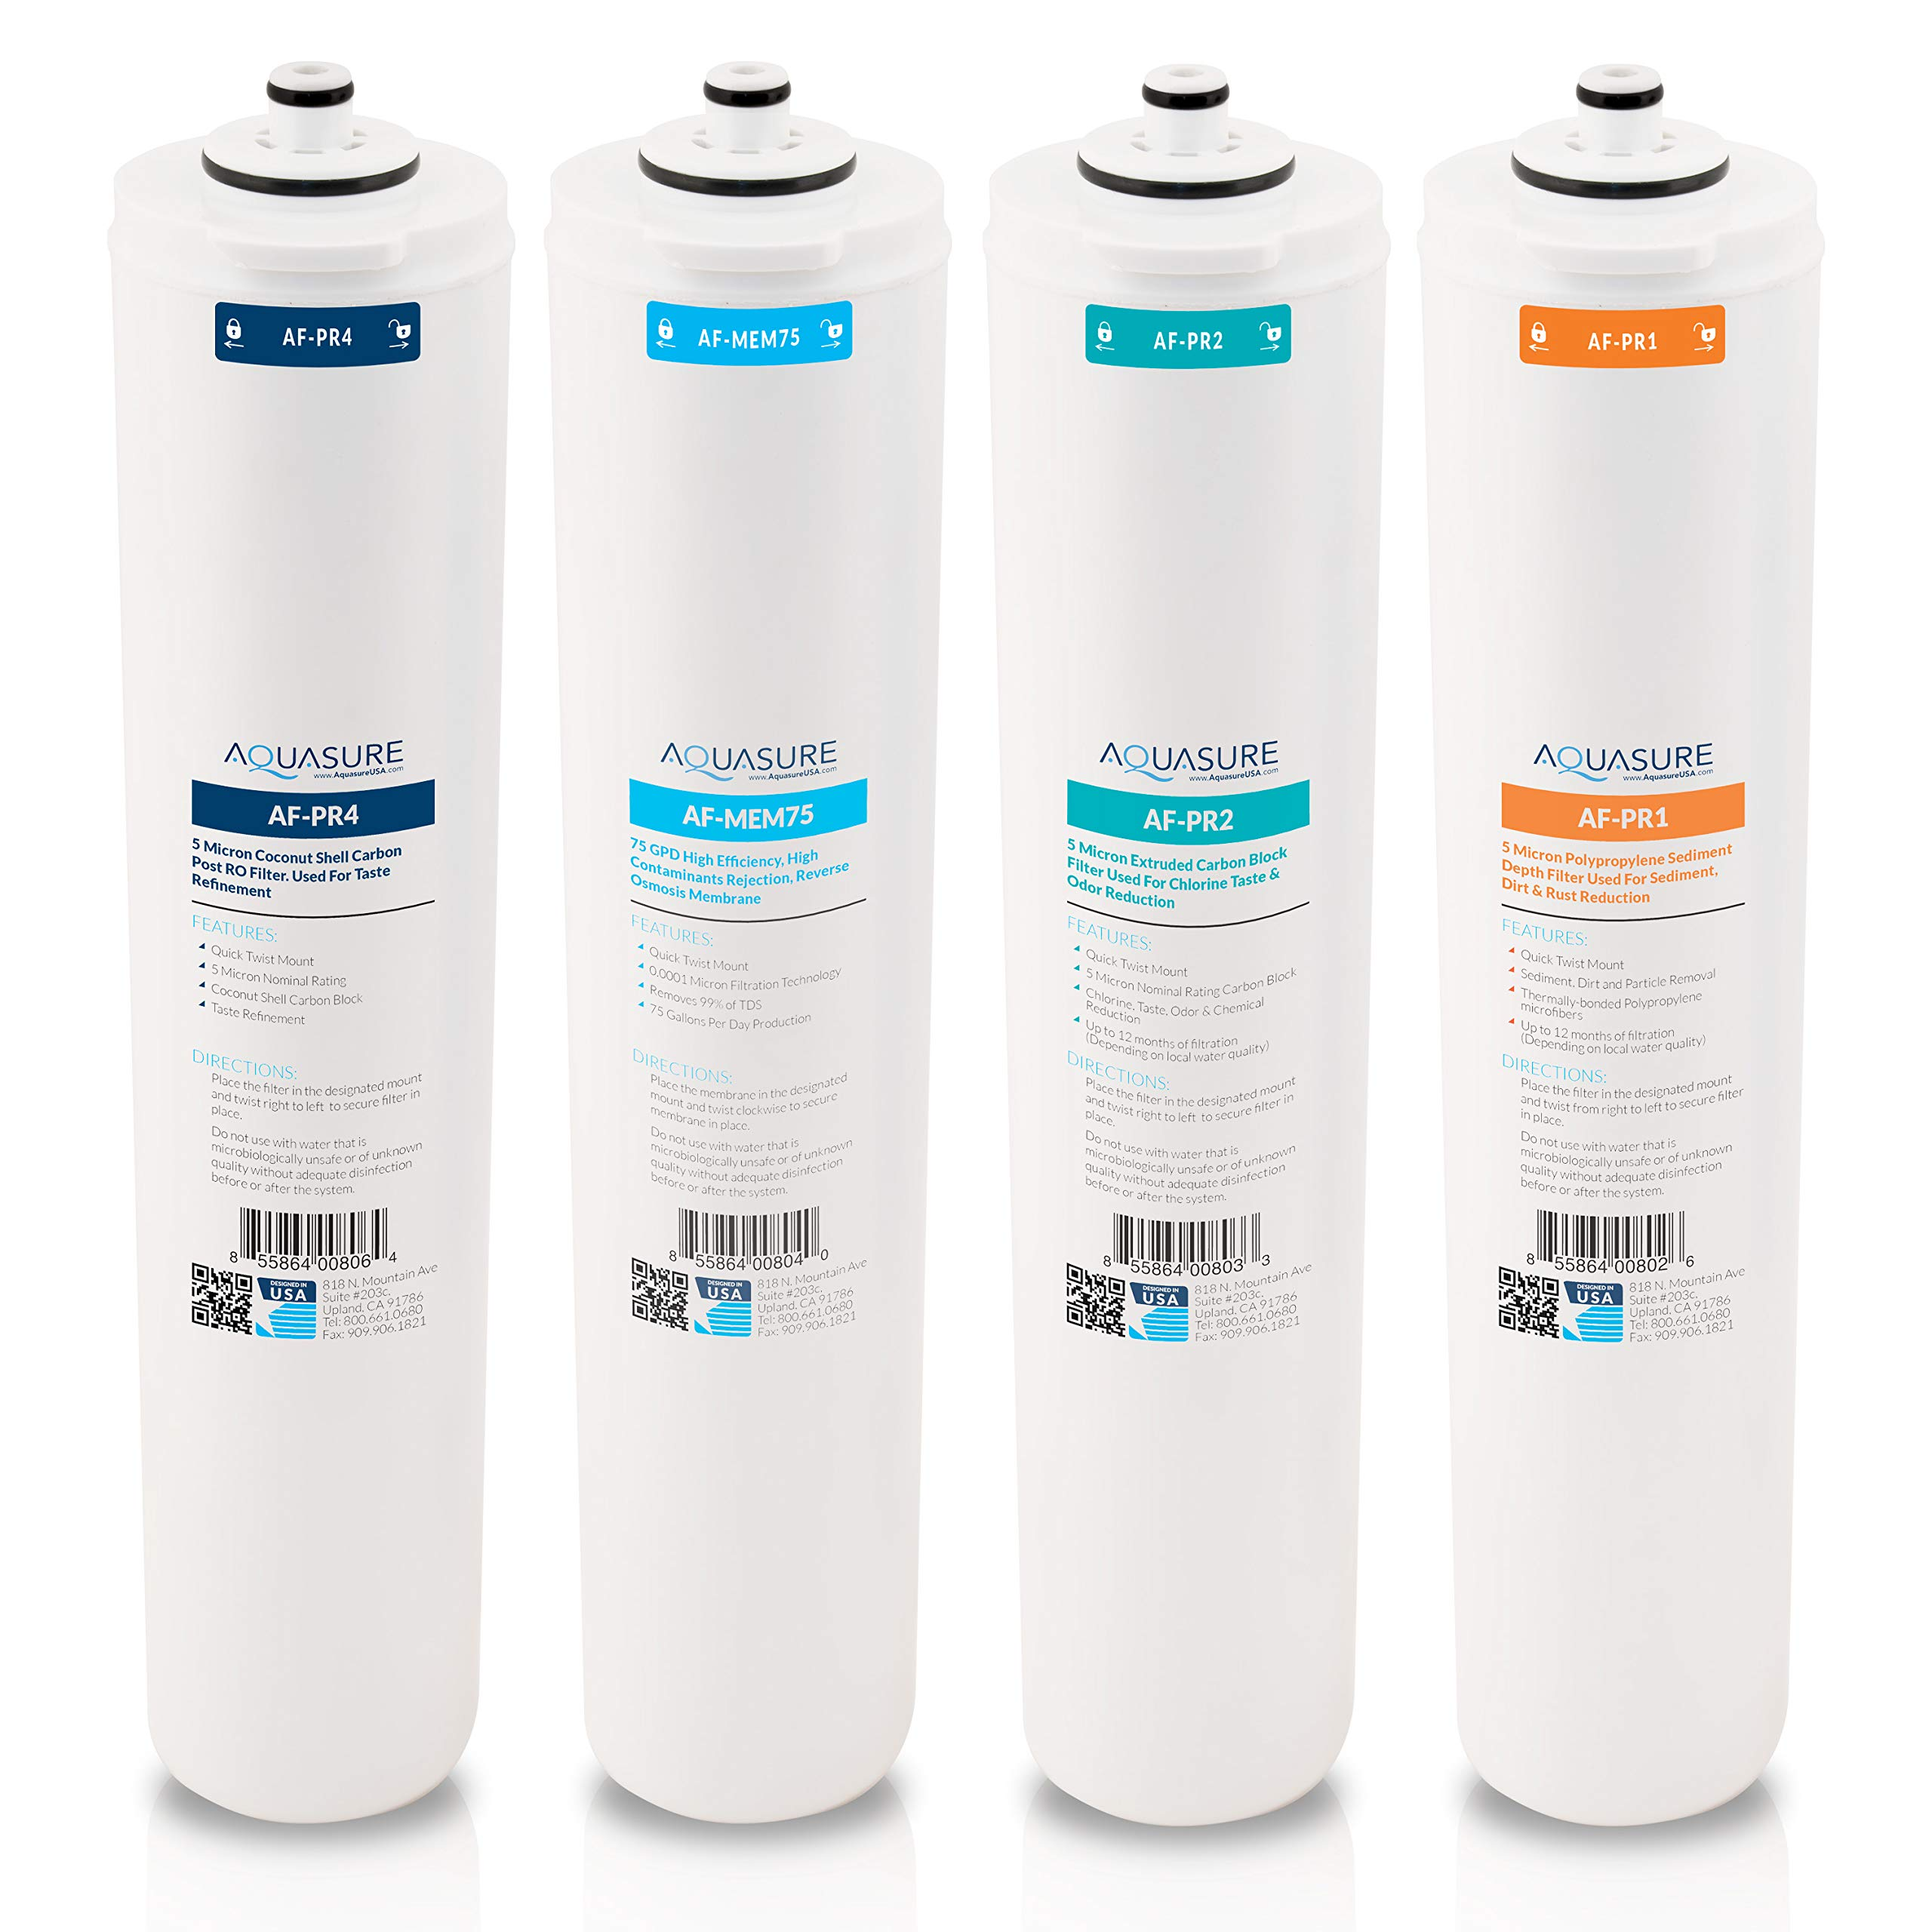 Aquasure Premier Series Complete 4 Stages Quick Change Filter Bundle with 75 GPD Reverse Osmosis Membrane